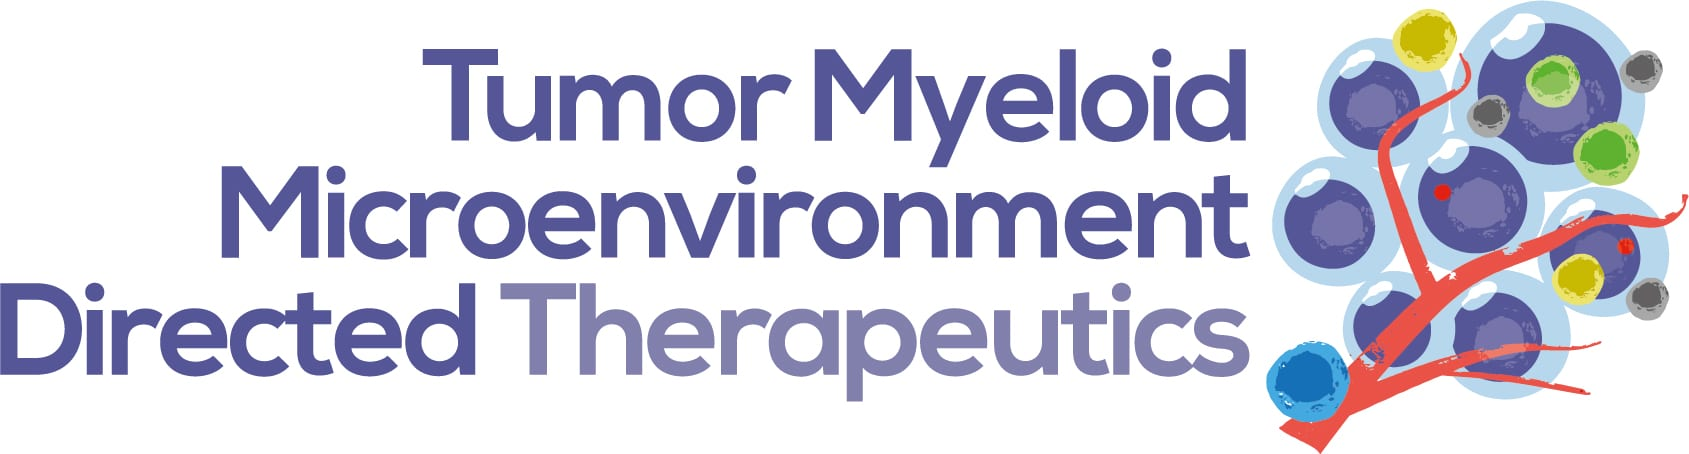 HW200930 Tumor Myeloid Microenvironment Directed Therapeutics logo